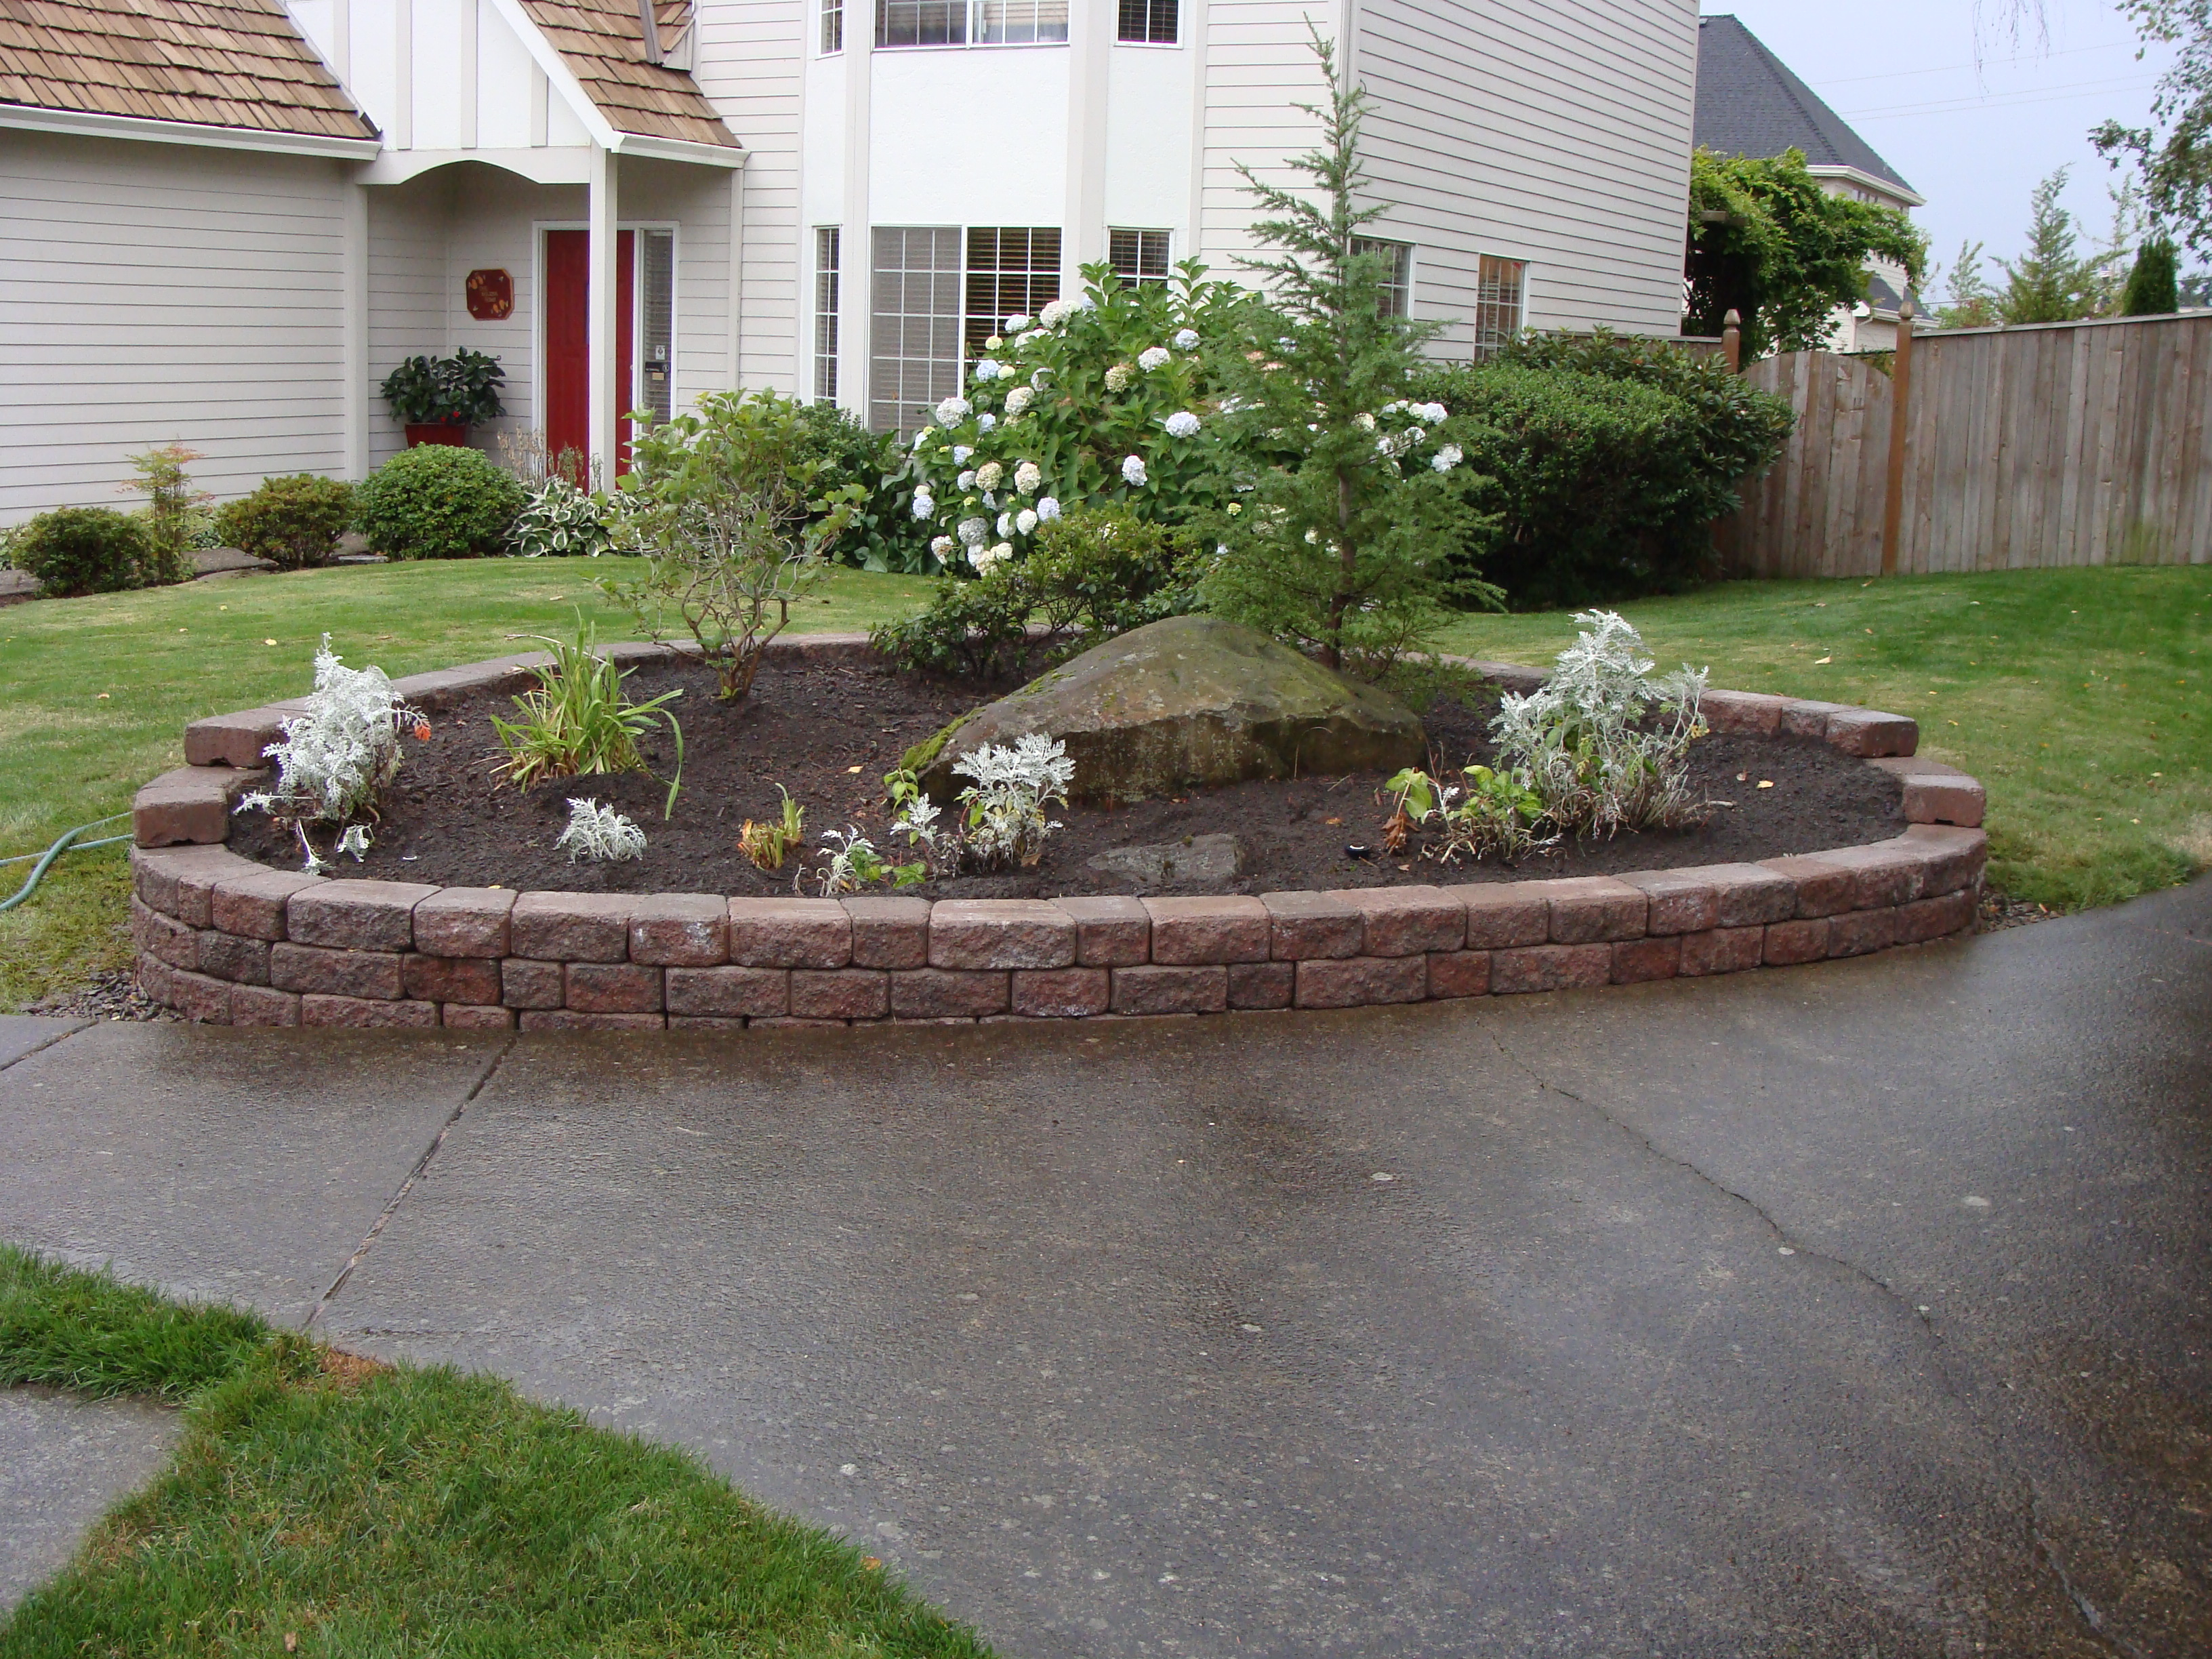 Quality tree service landscape maintenance llc for Tree and garden services